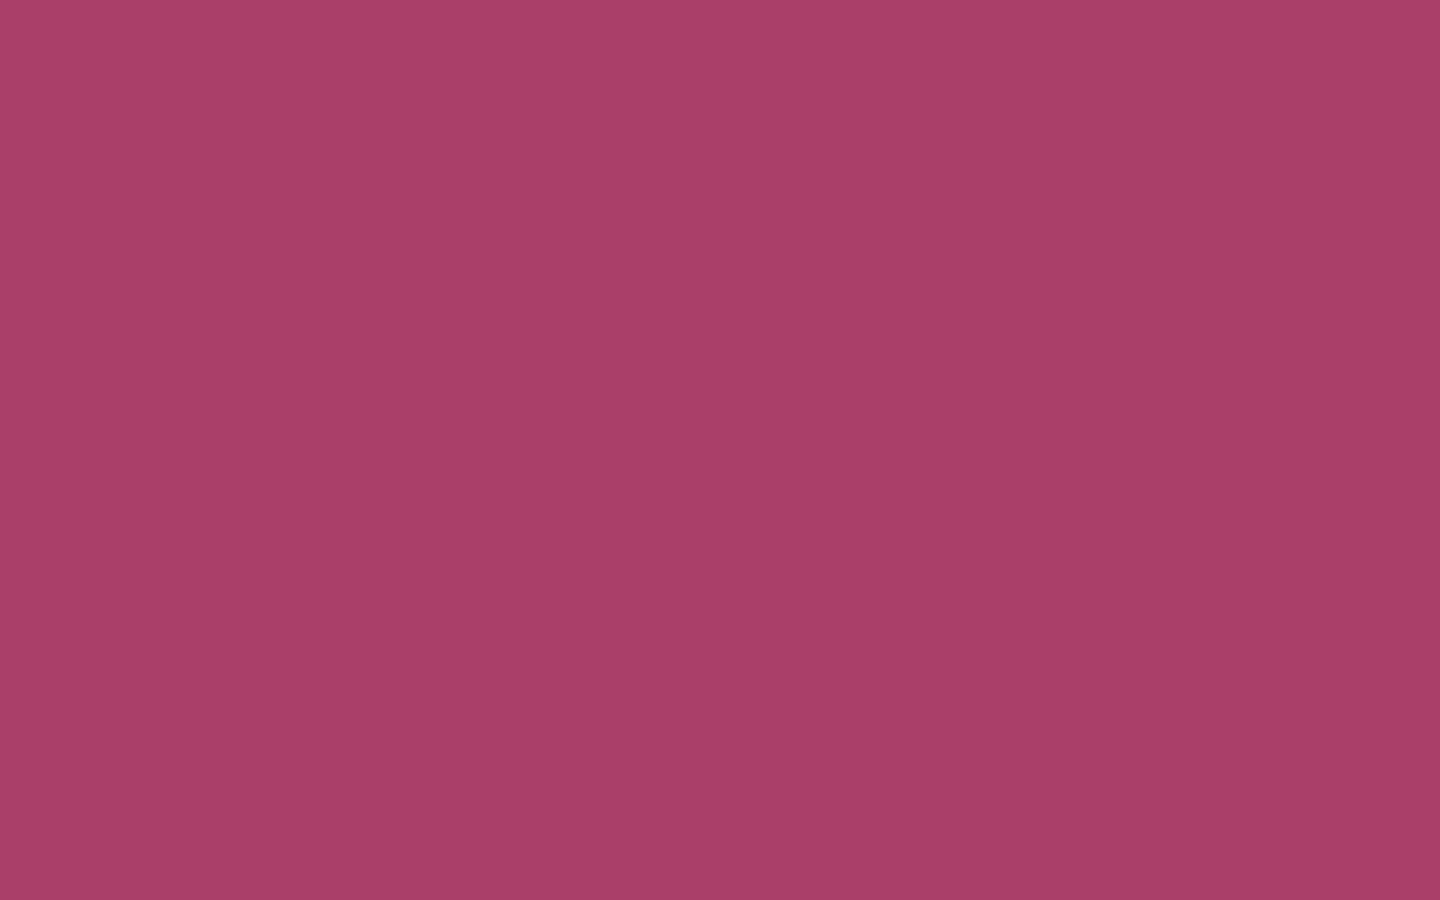 1440x900 Medium Ruby Solid Color Background